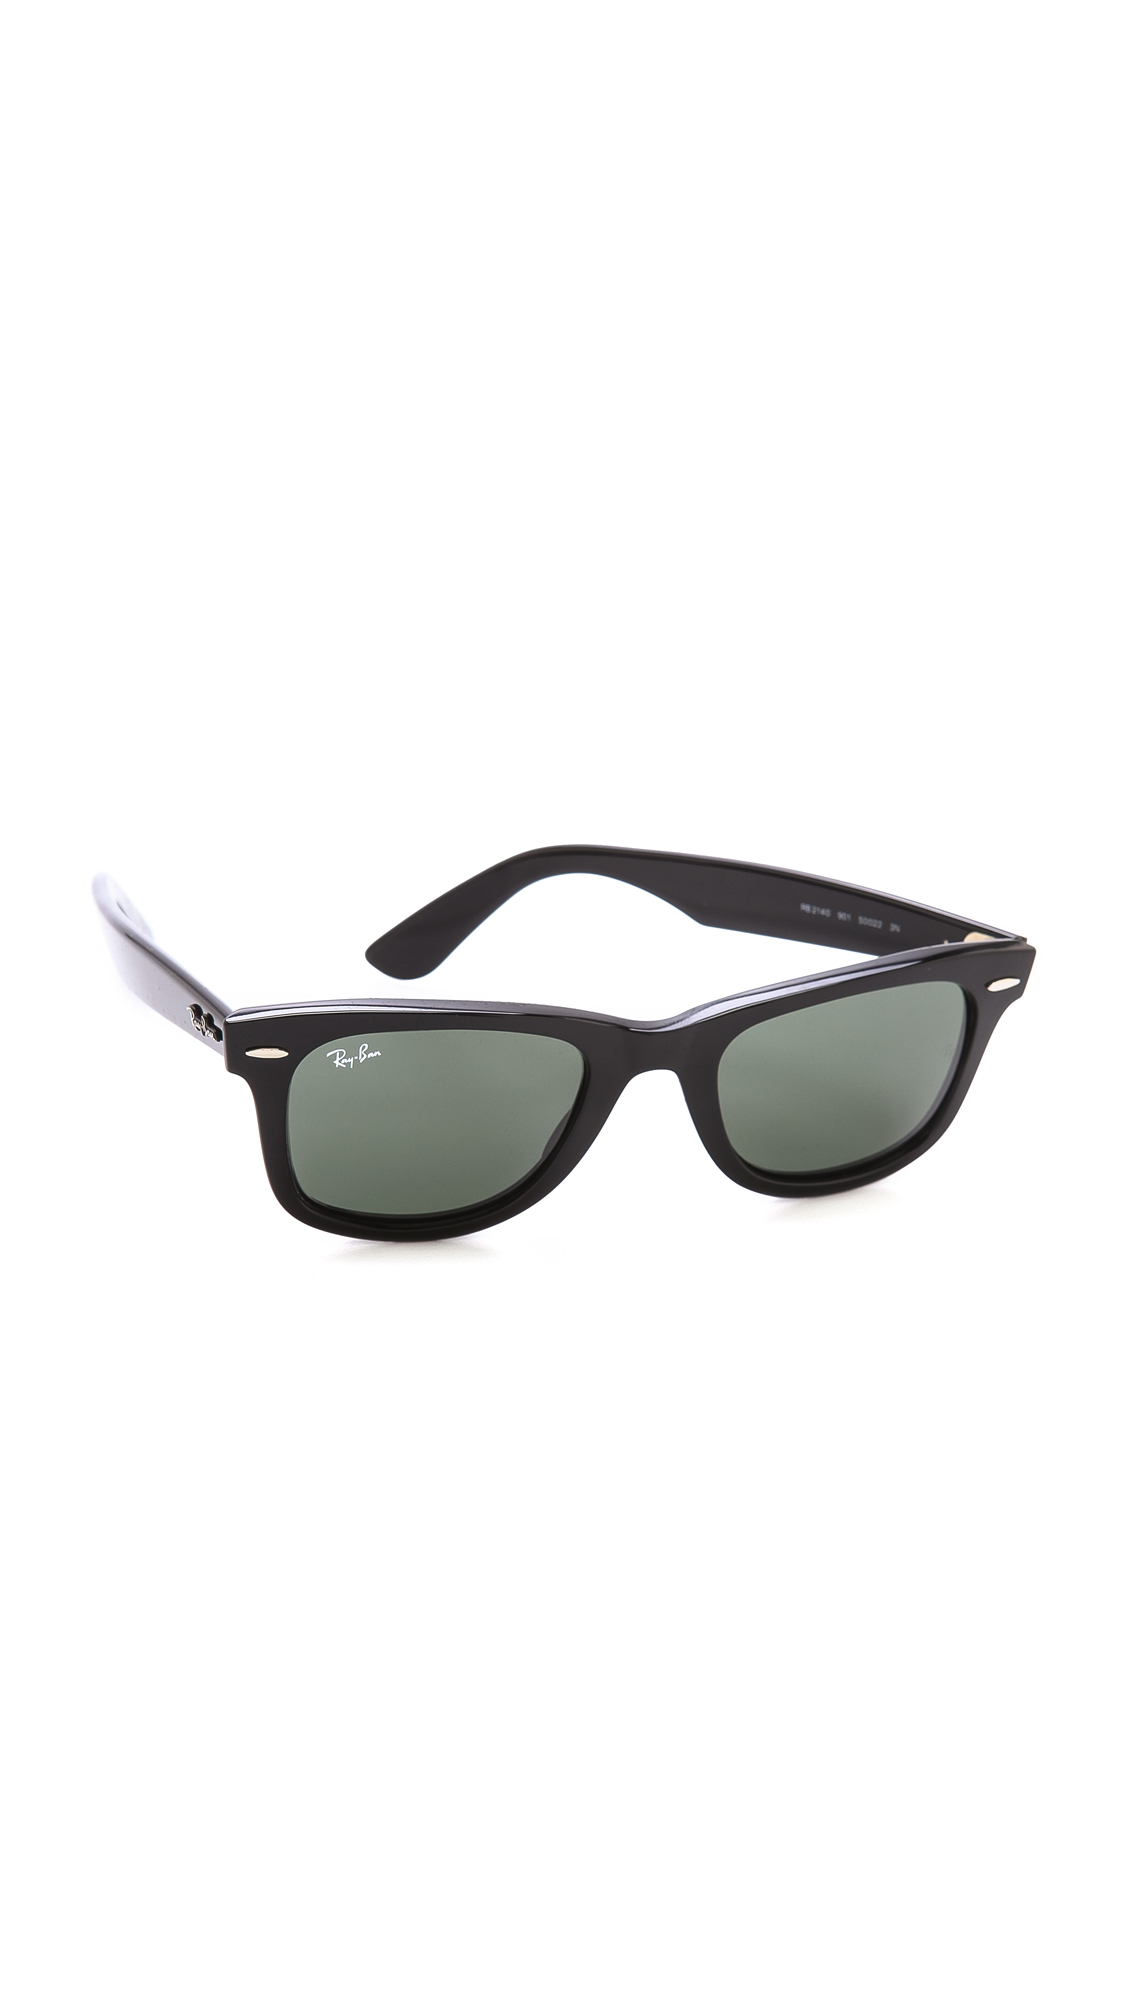 ray ban wayfarer glasses  Ray-Ban Original Wayfarer Sunglasses